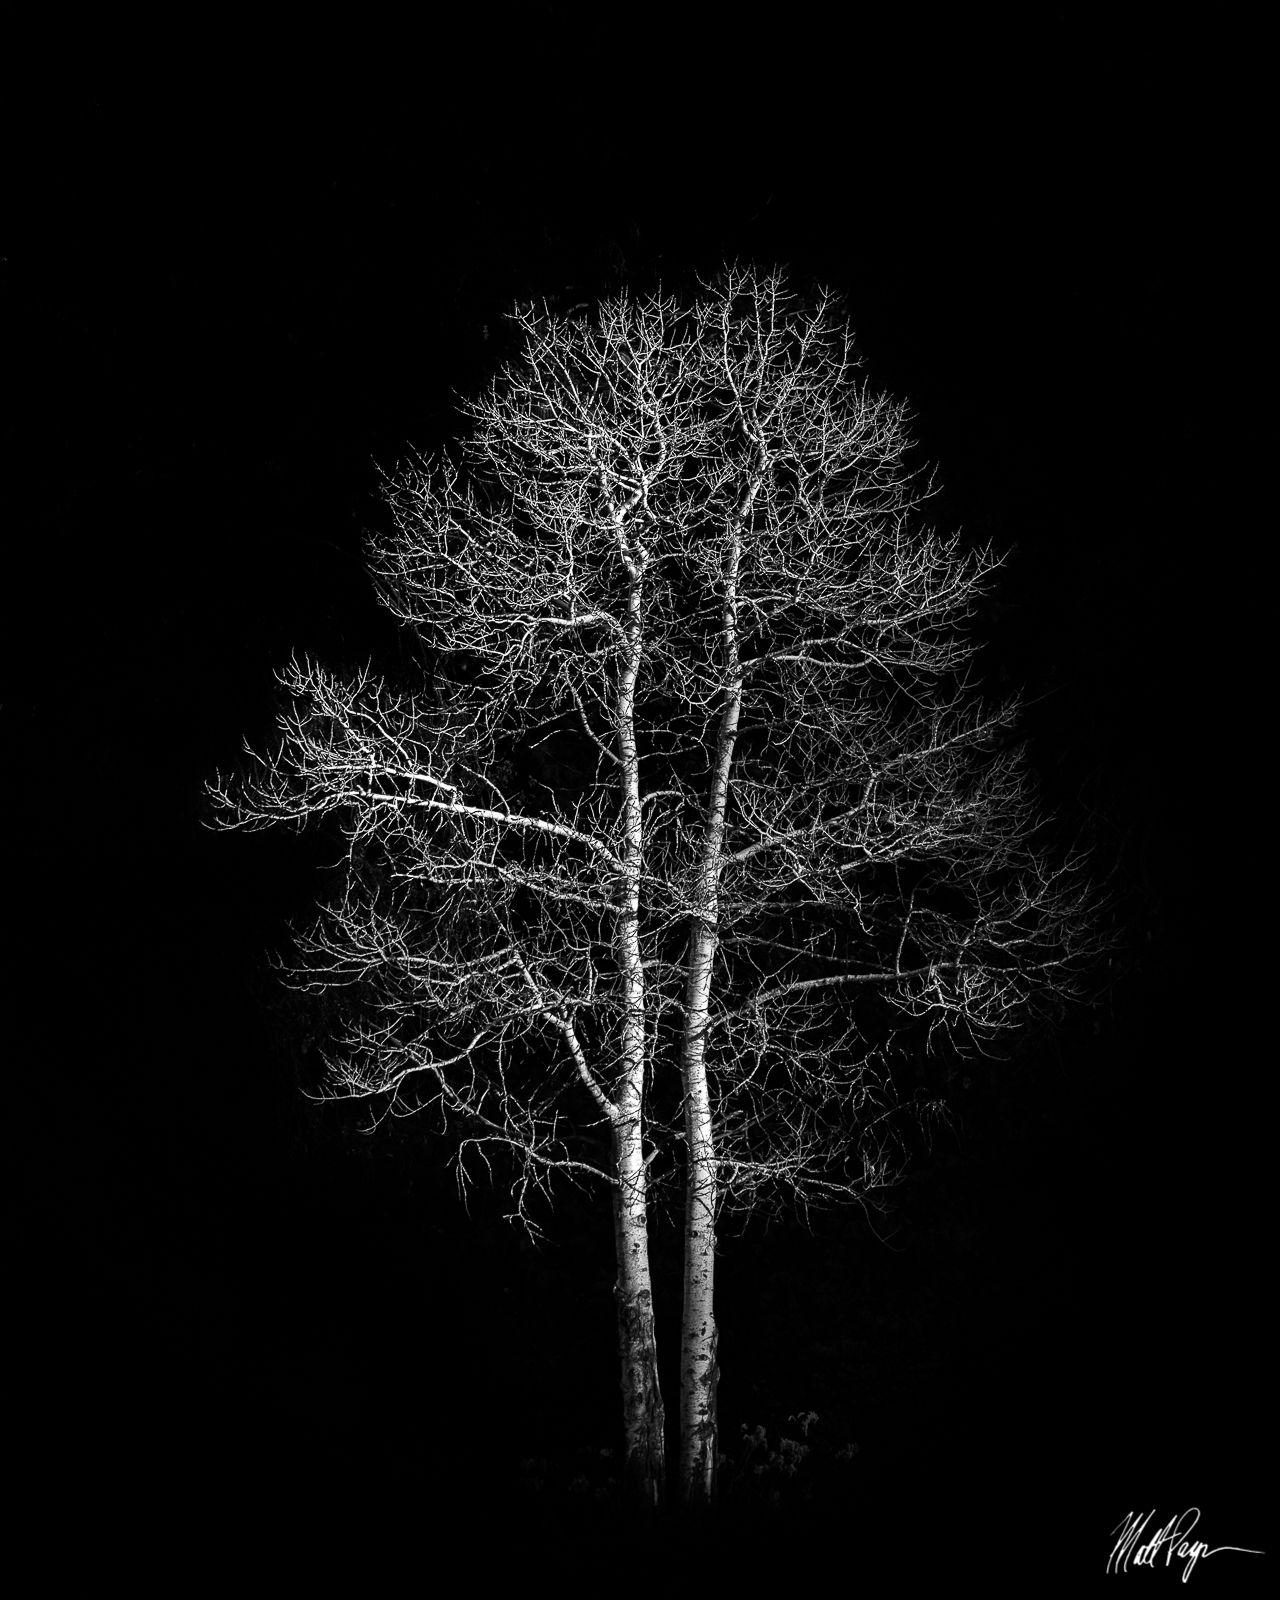 Black and White, Dramatic, Low Key, Winter, Yosemite National Park, tree, photo